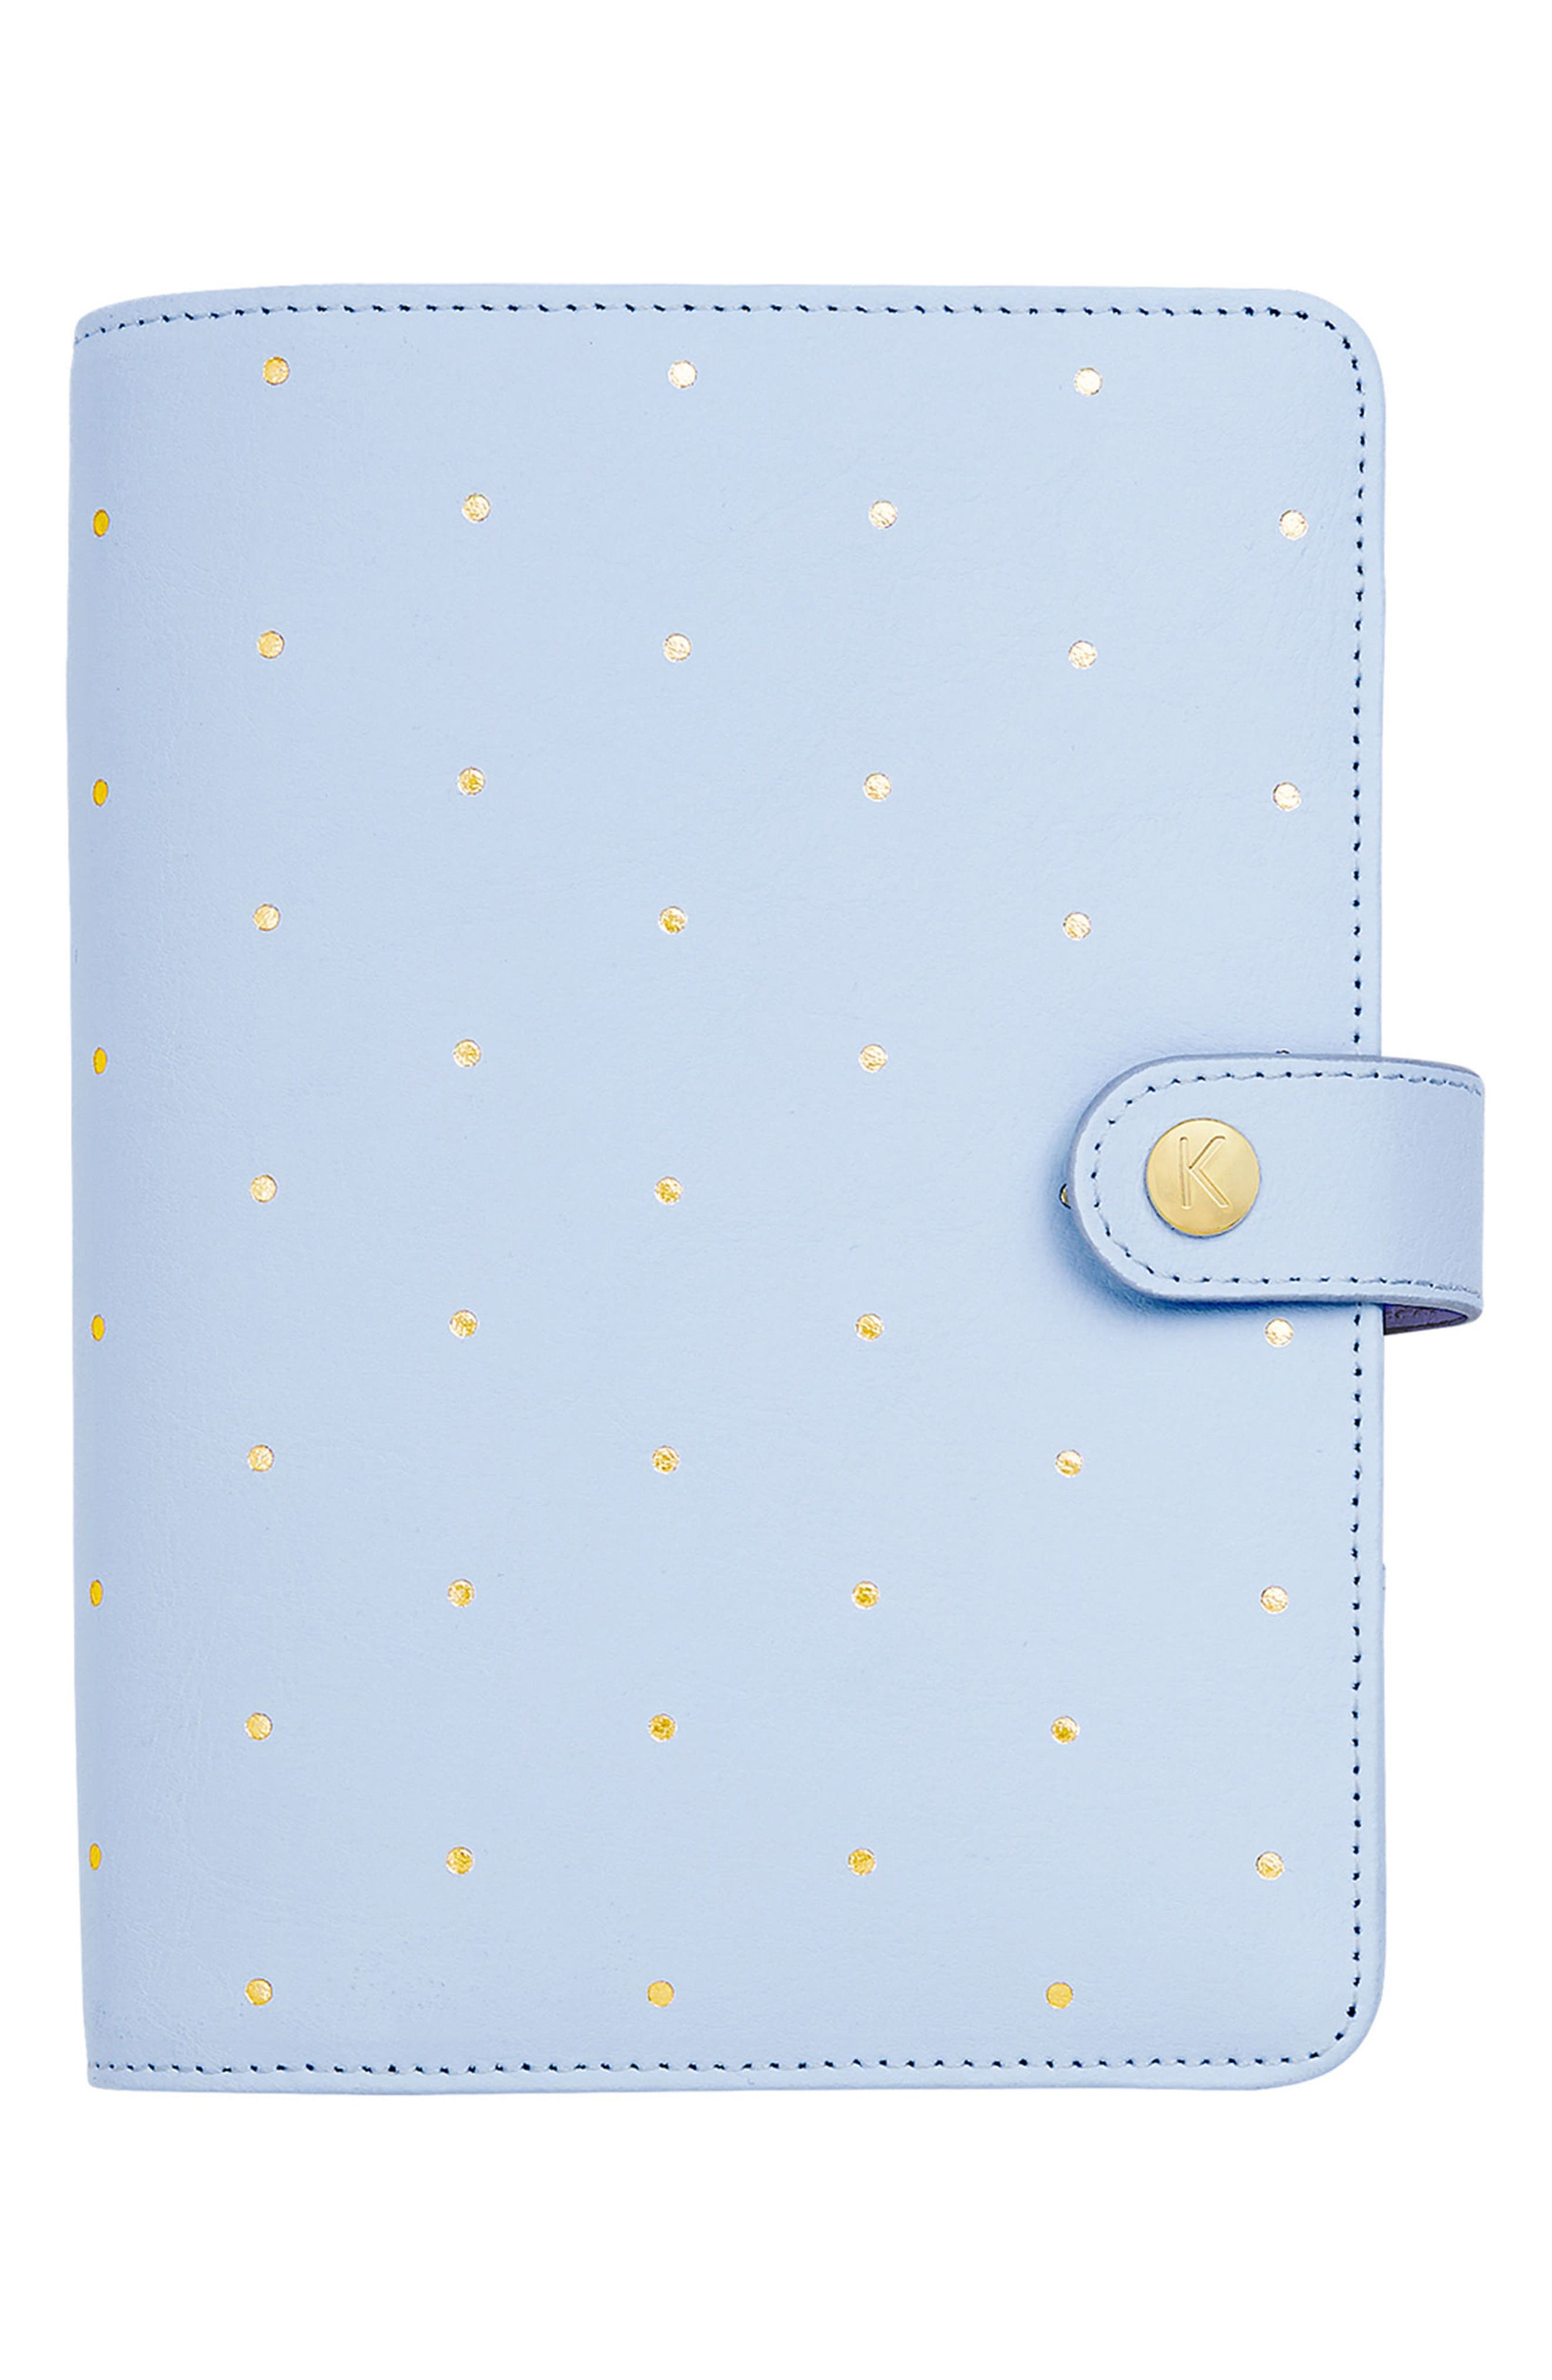 Medium Leather Personal Planner,                         Main,                         color, Soft Blue